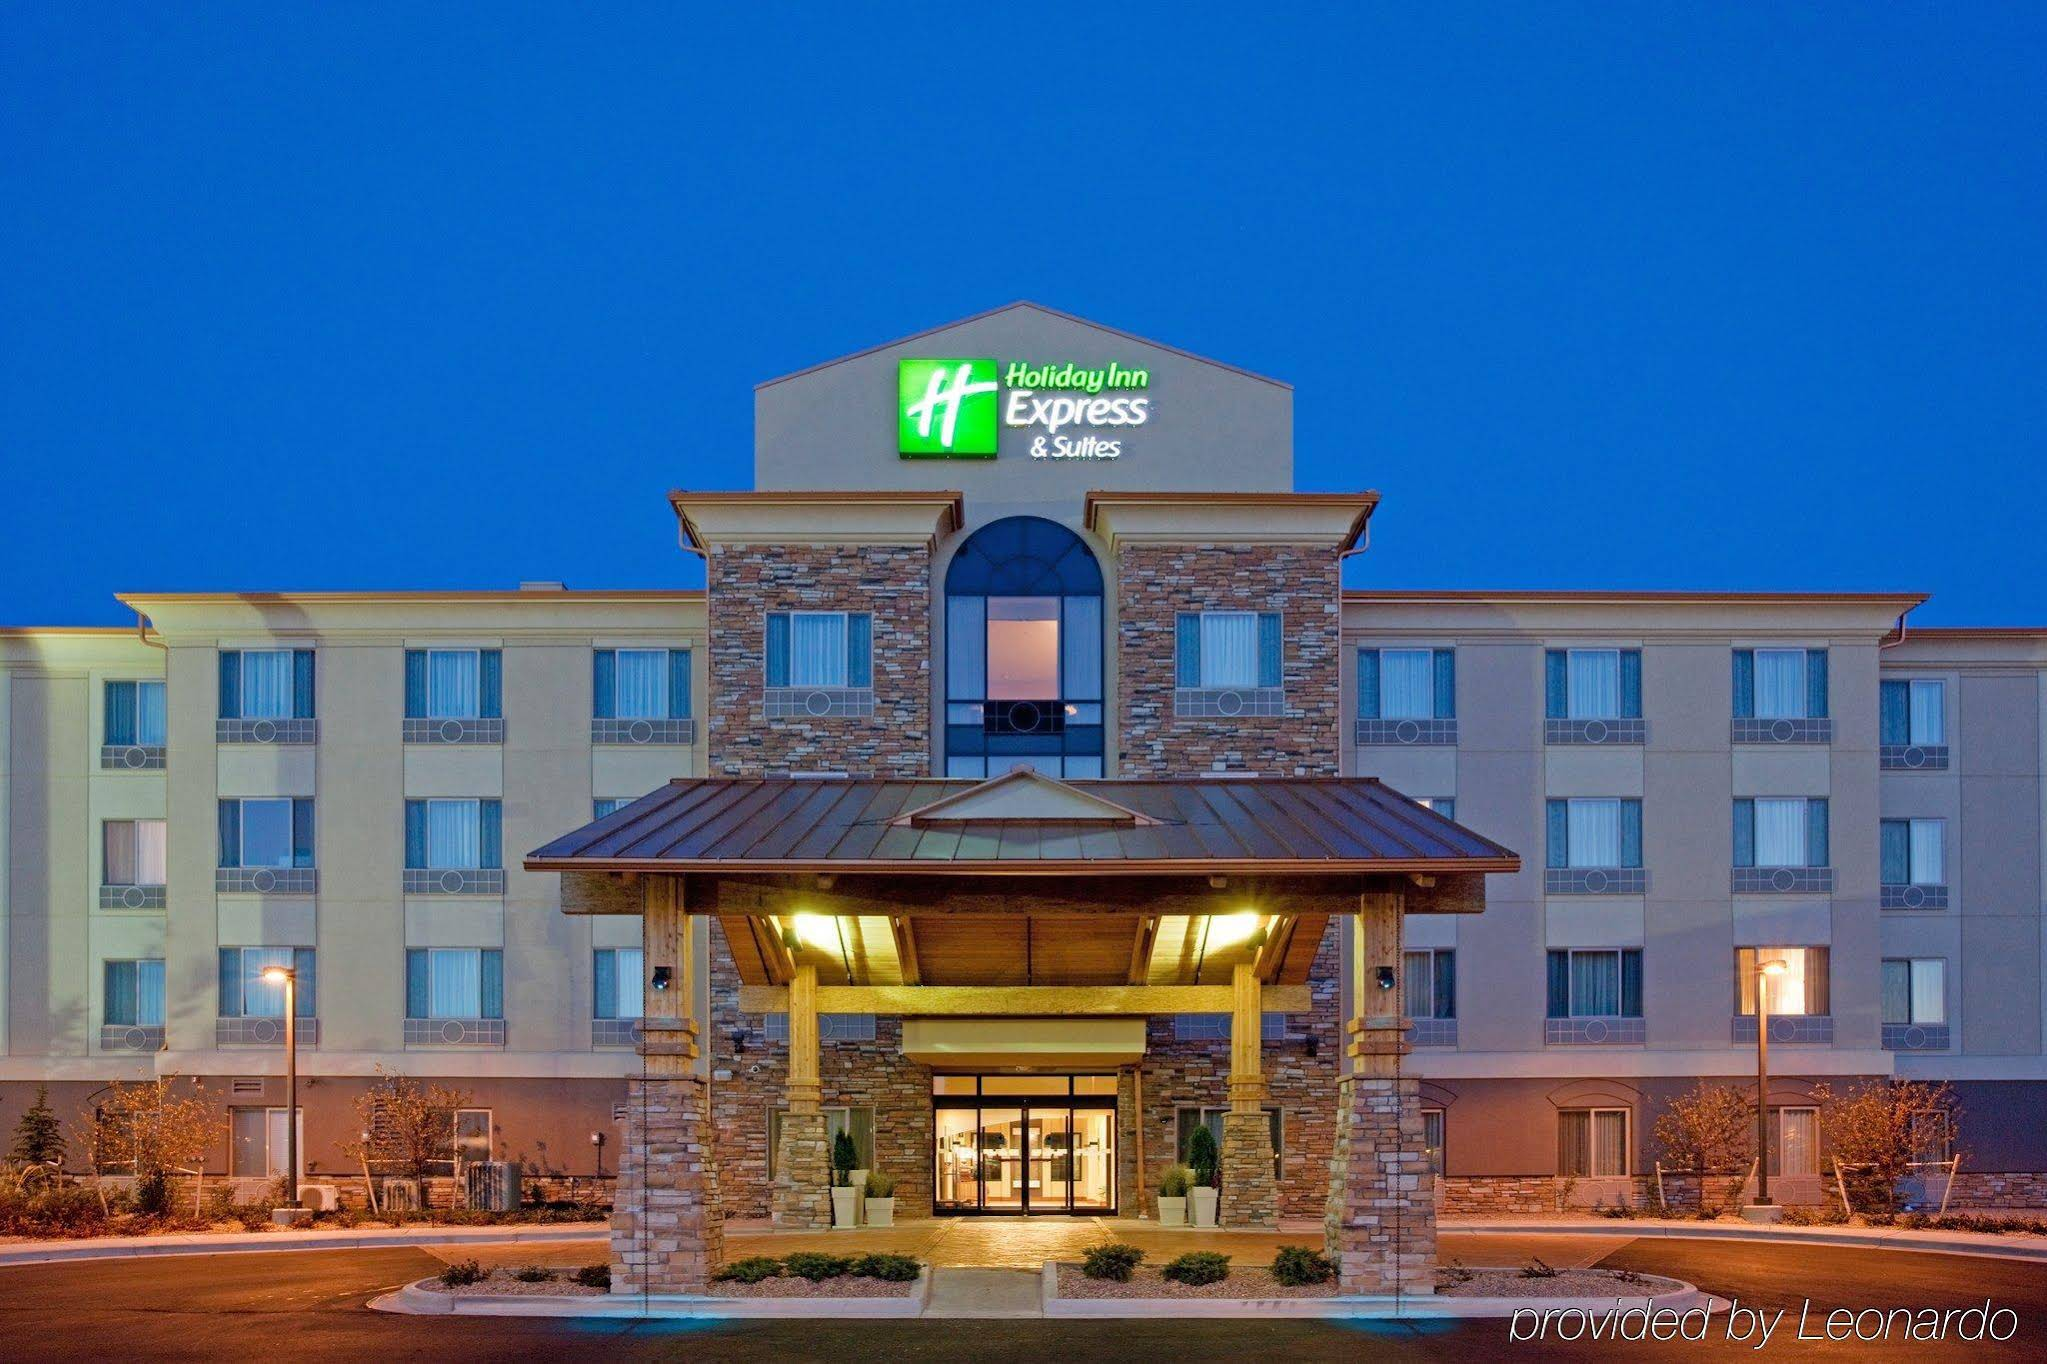 Holiday Inn Express Hotel & Suites Denver Airport on